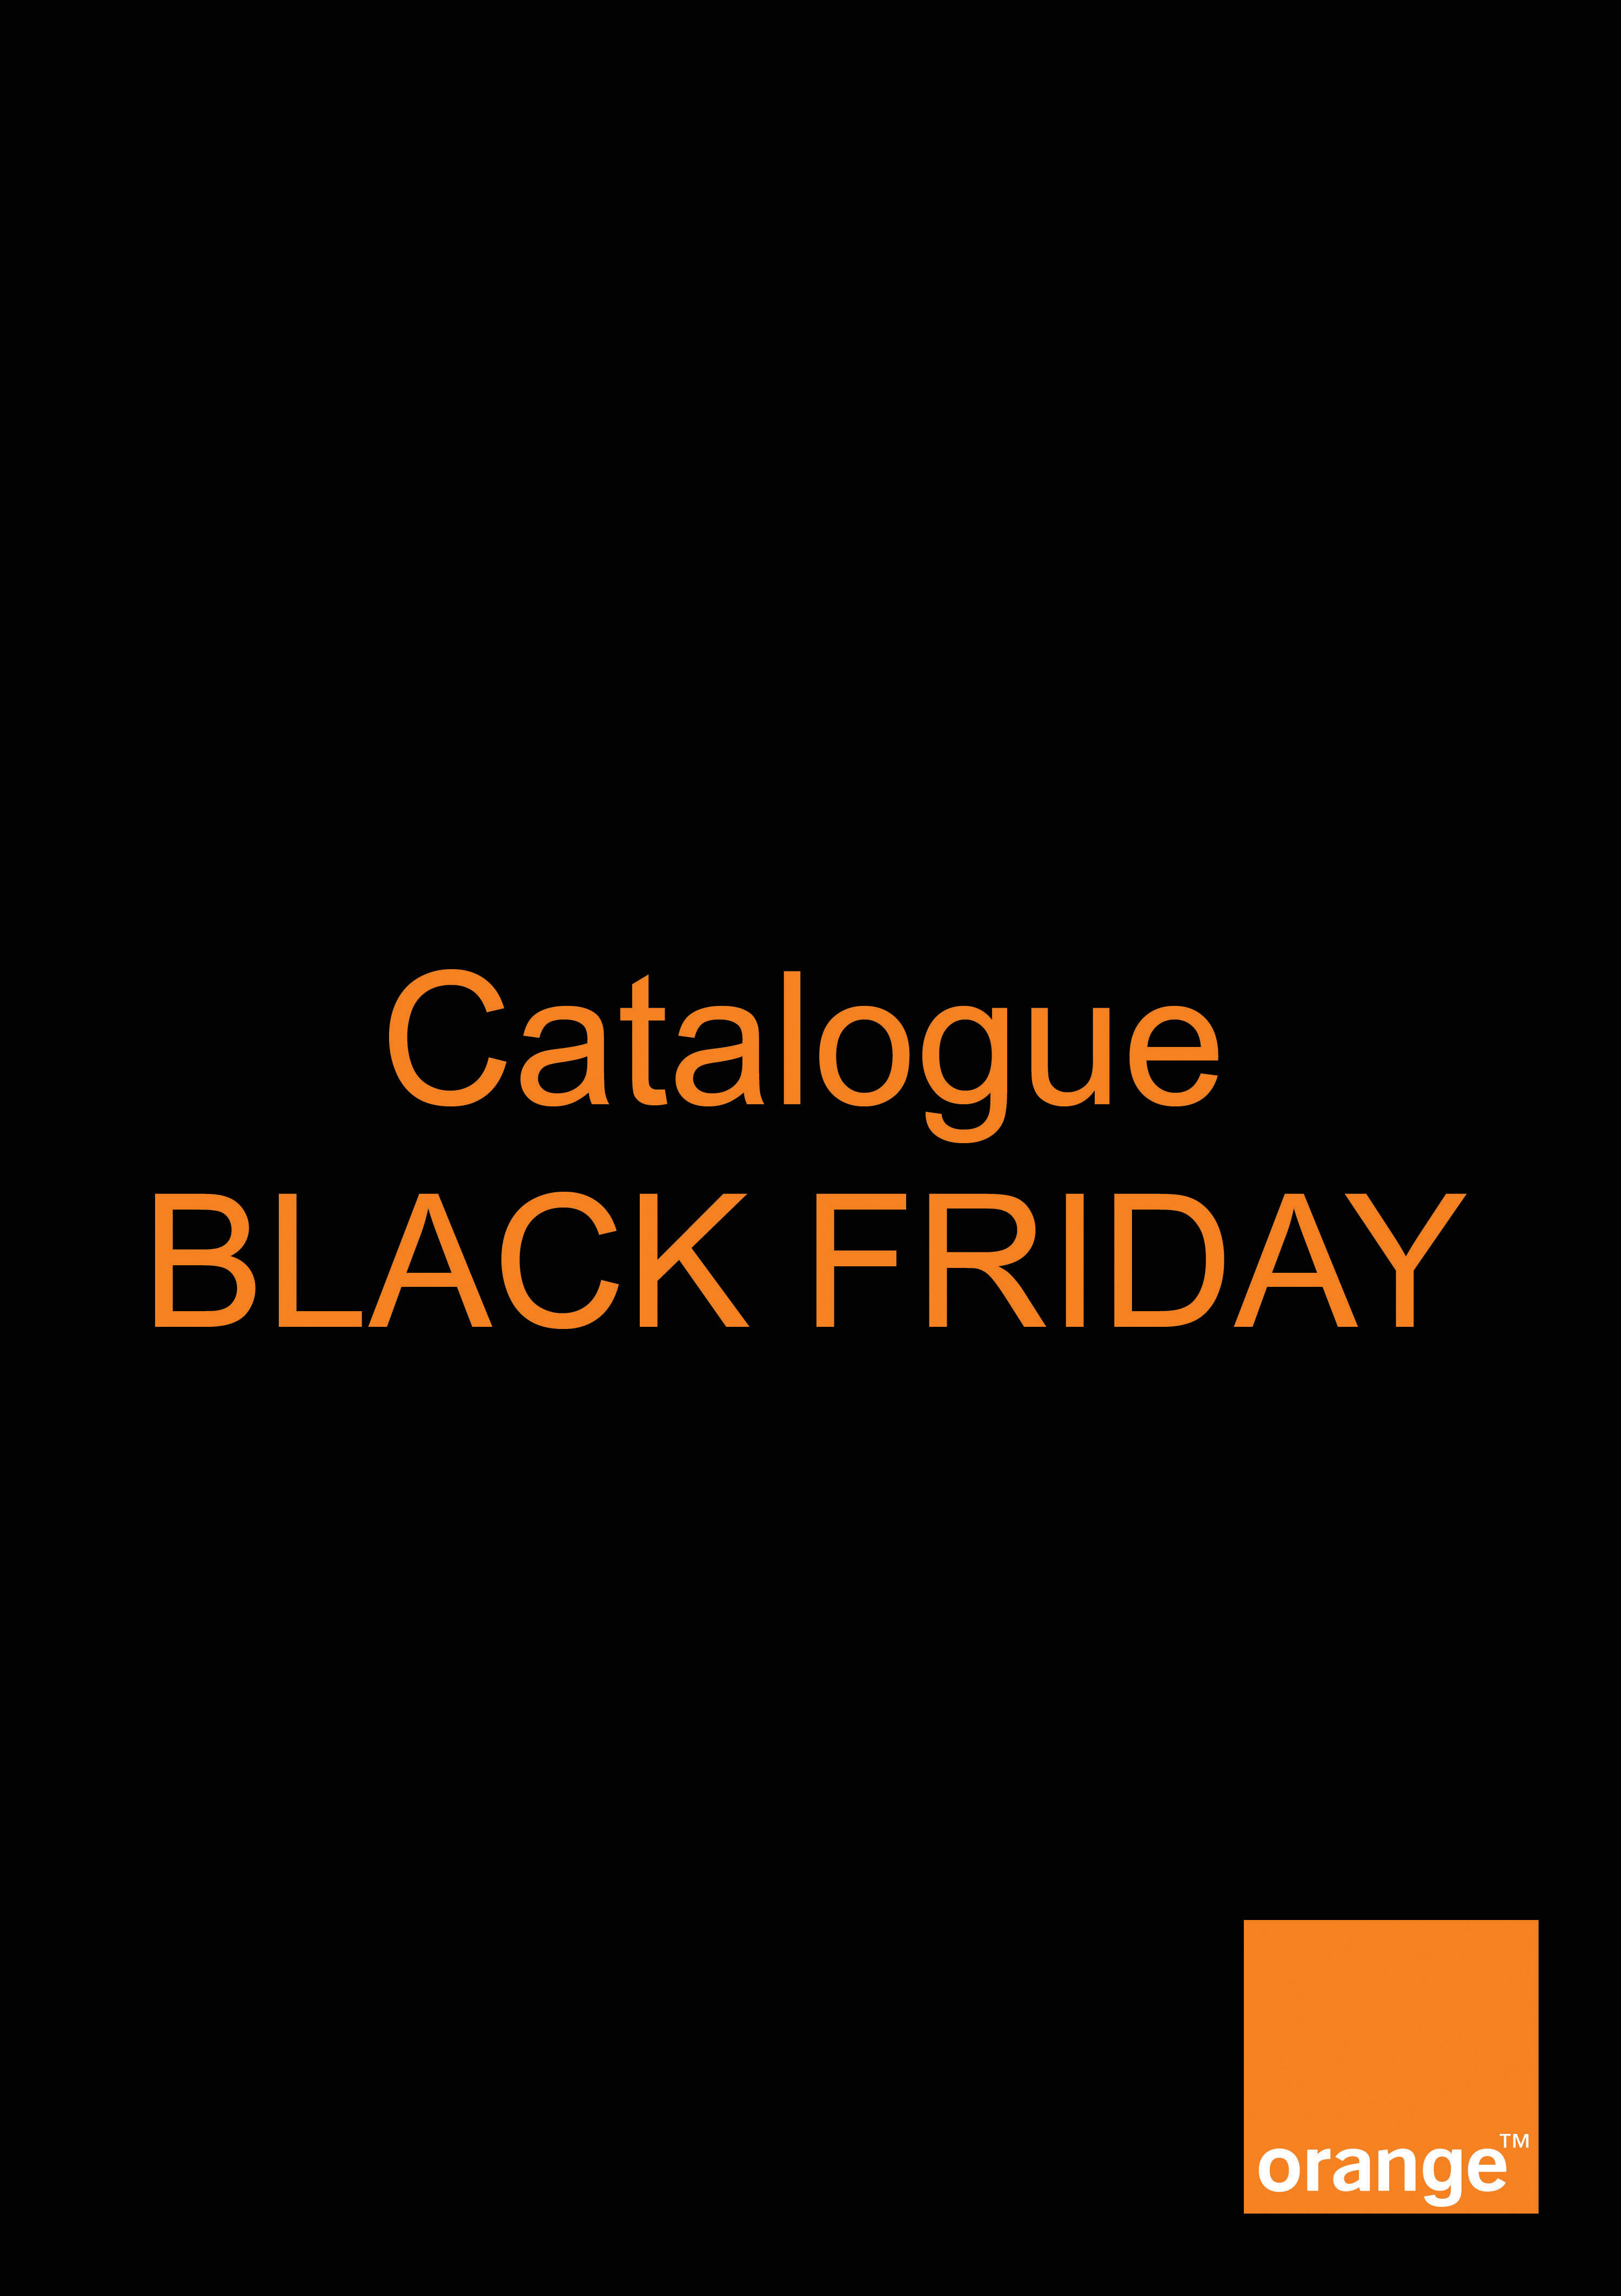 Black Friday chez Orange